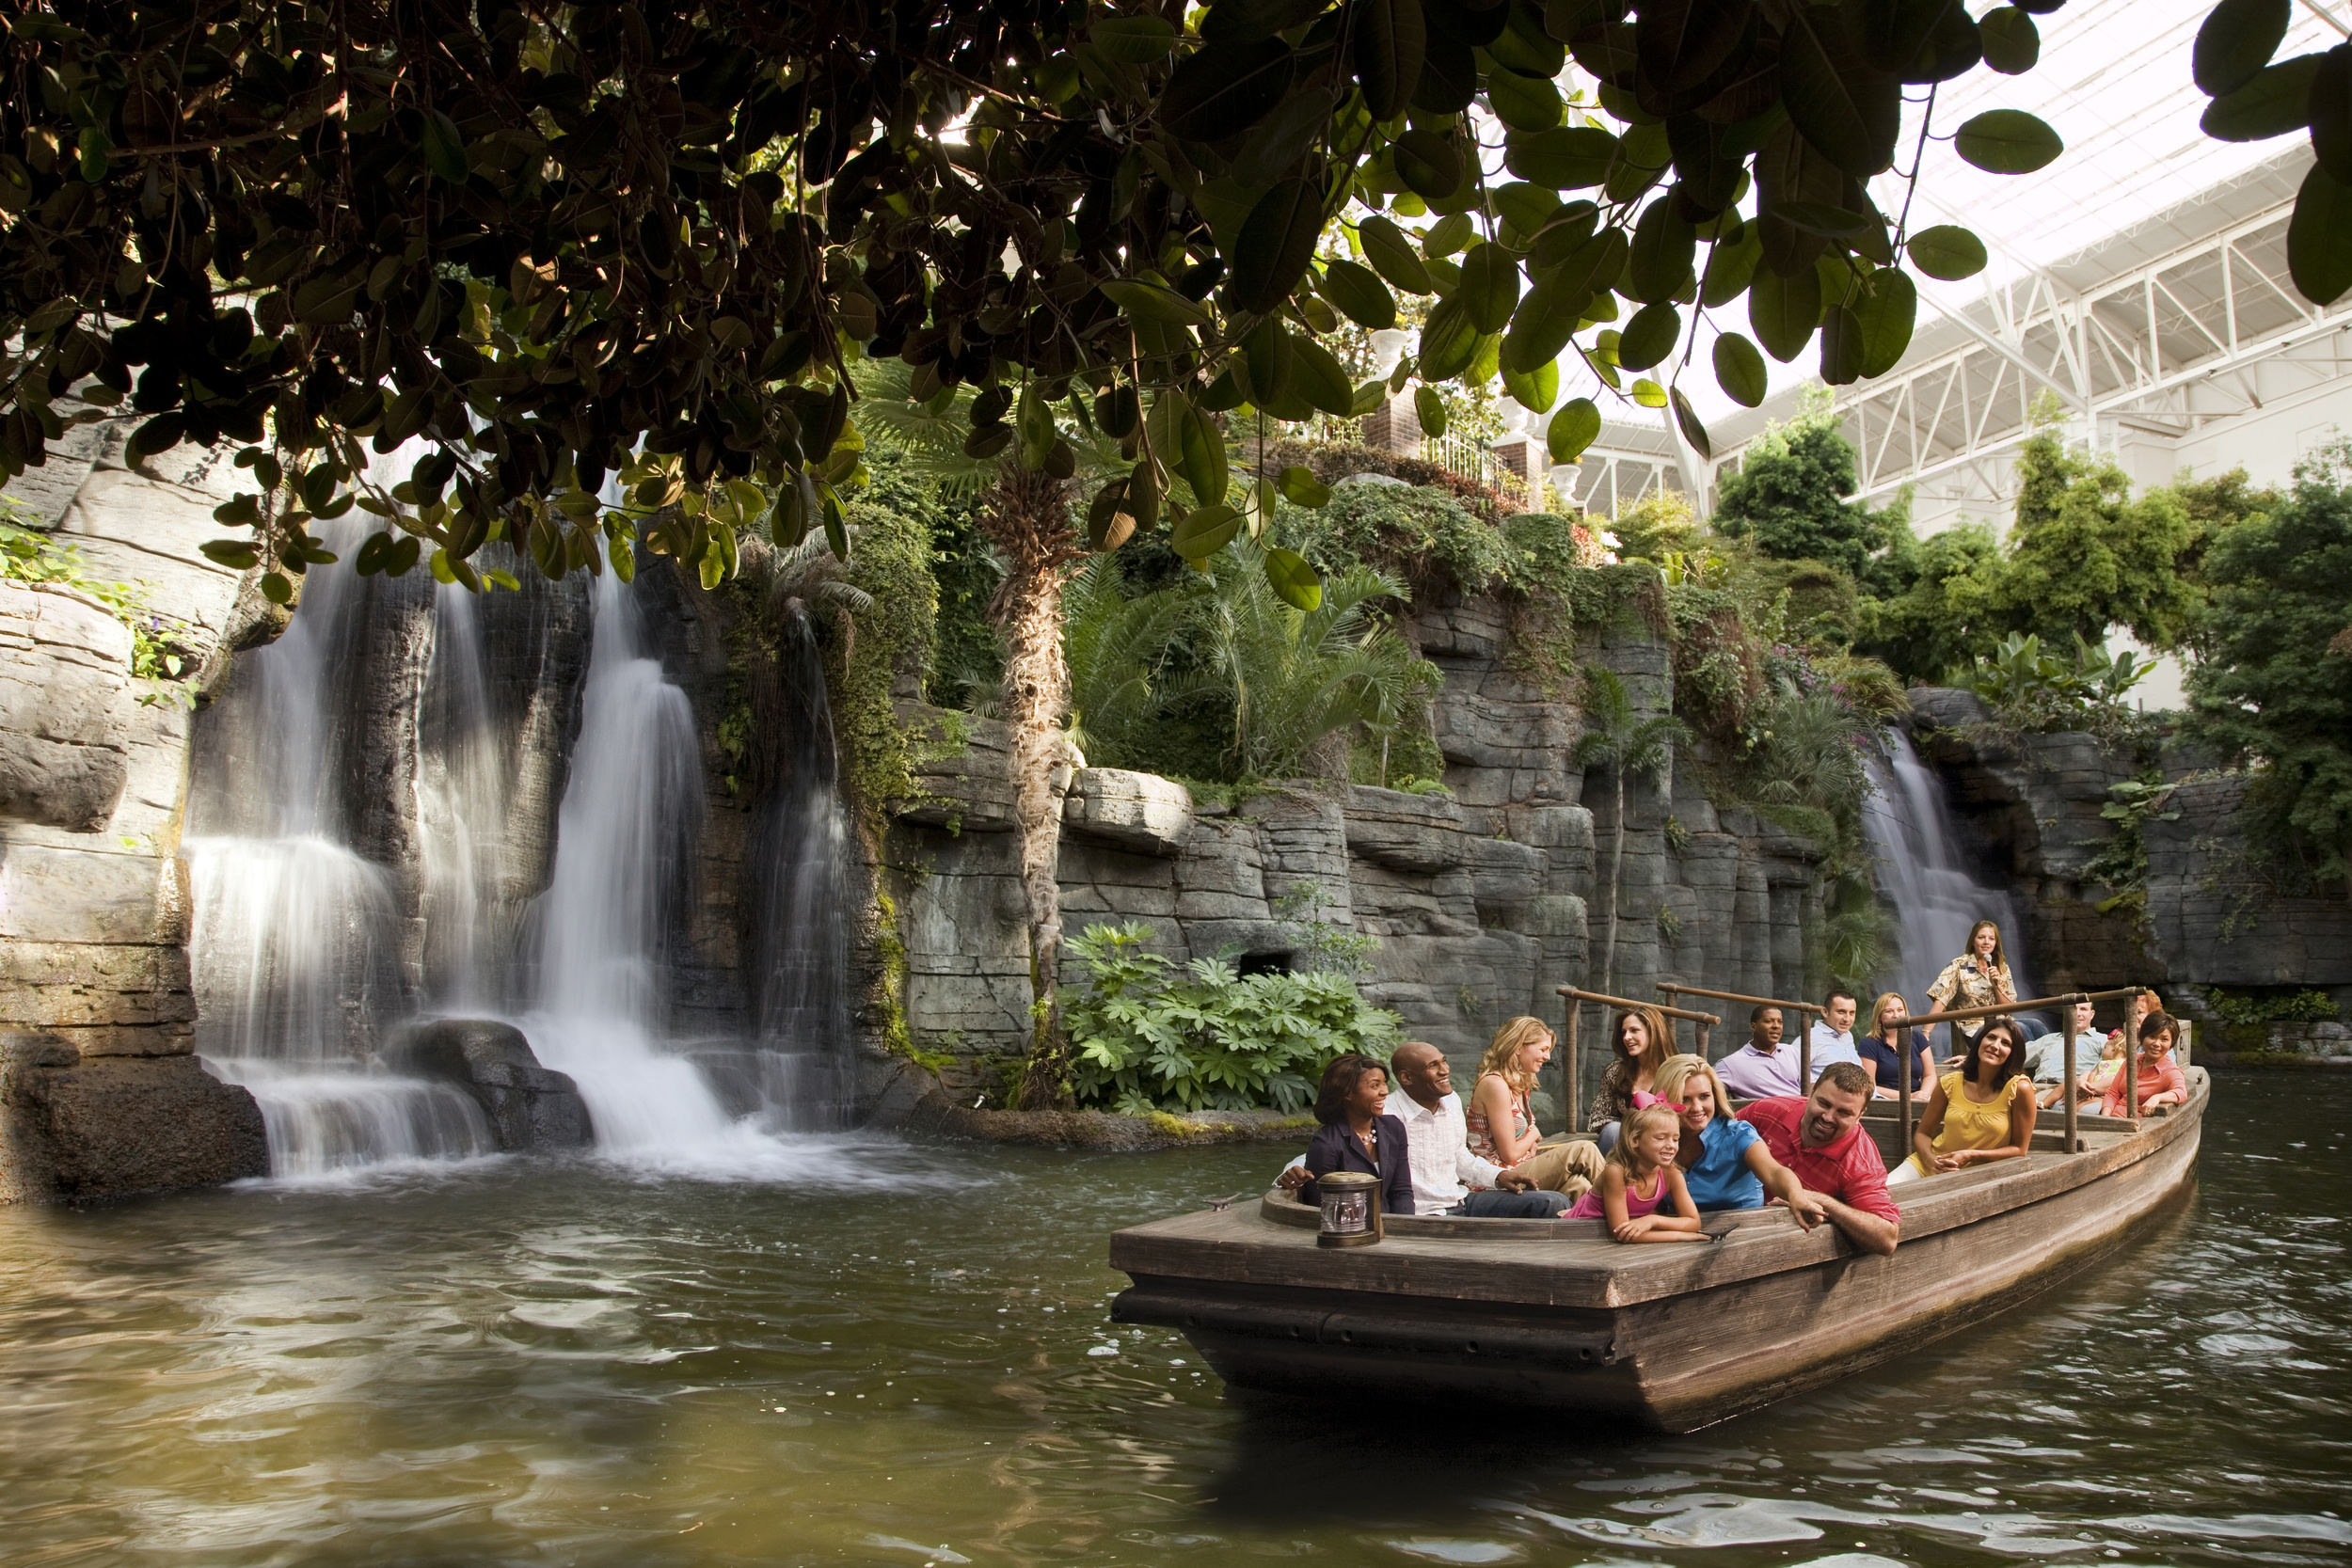 Gaylord Opryland Riverboat ride